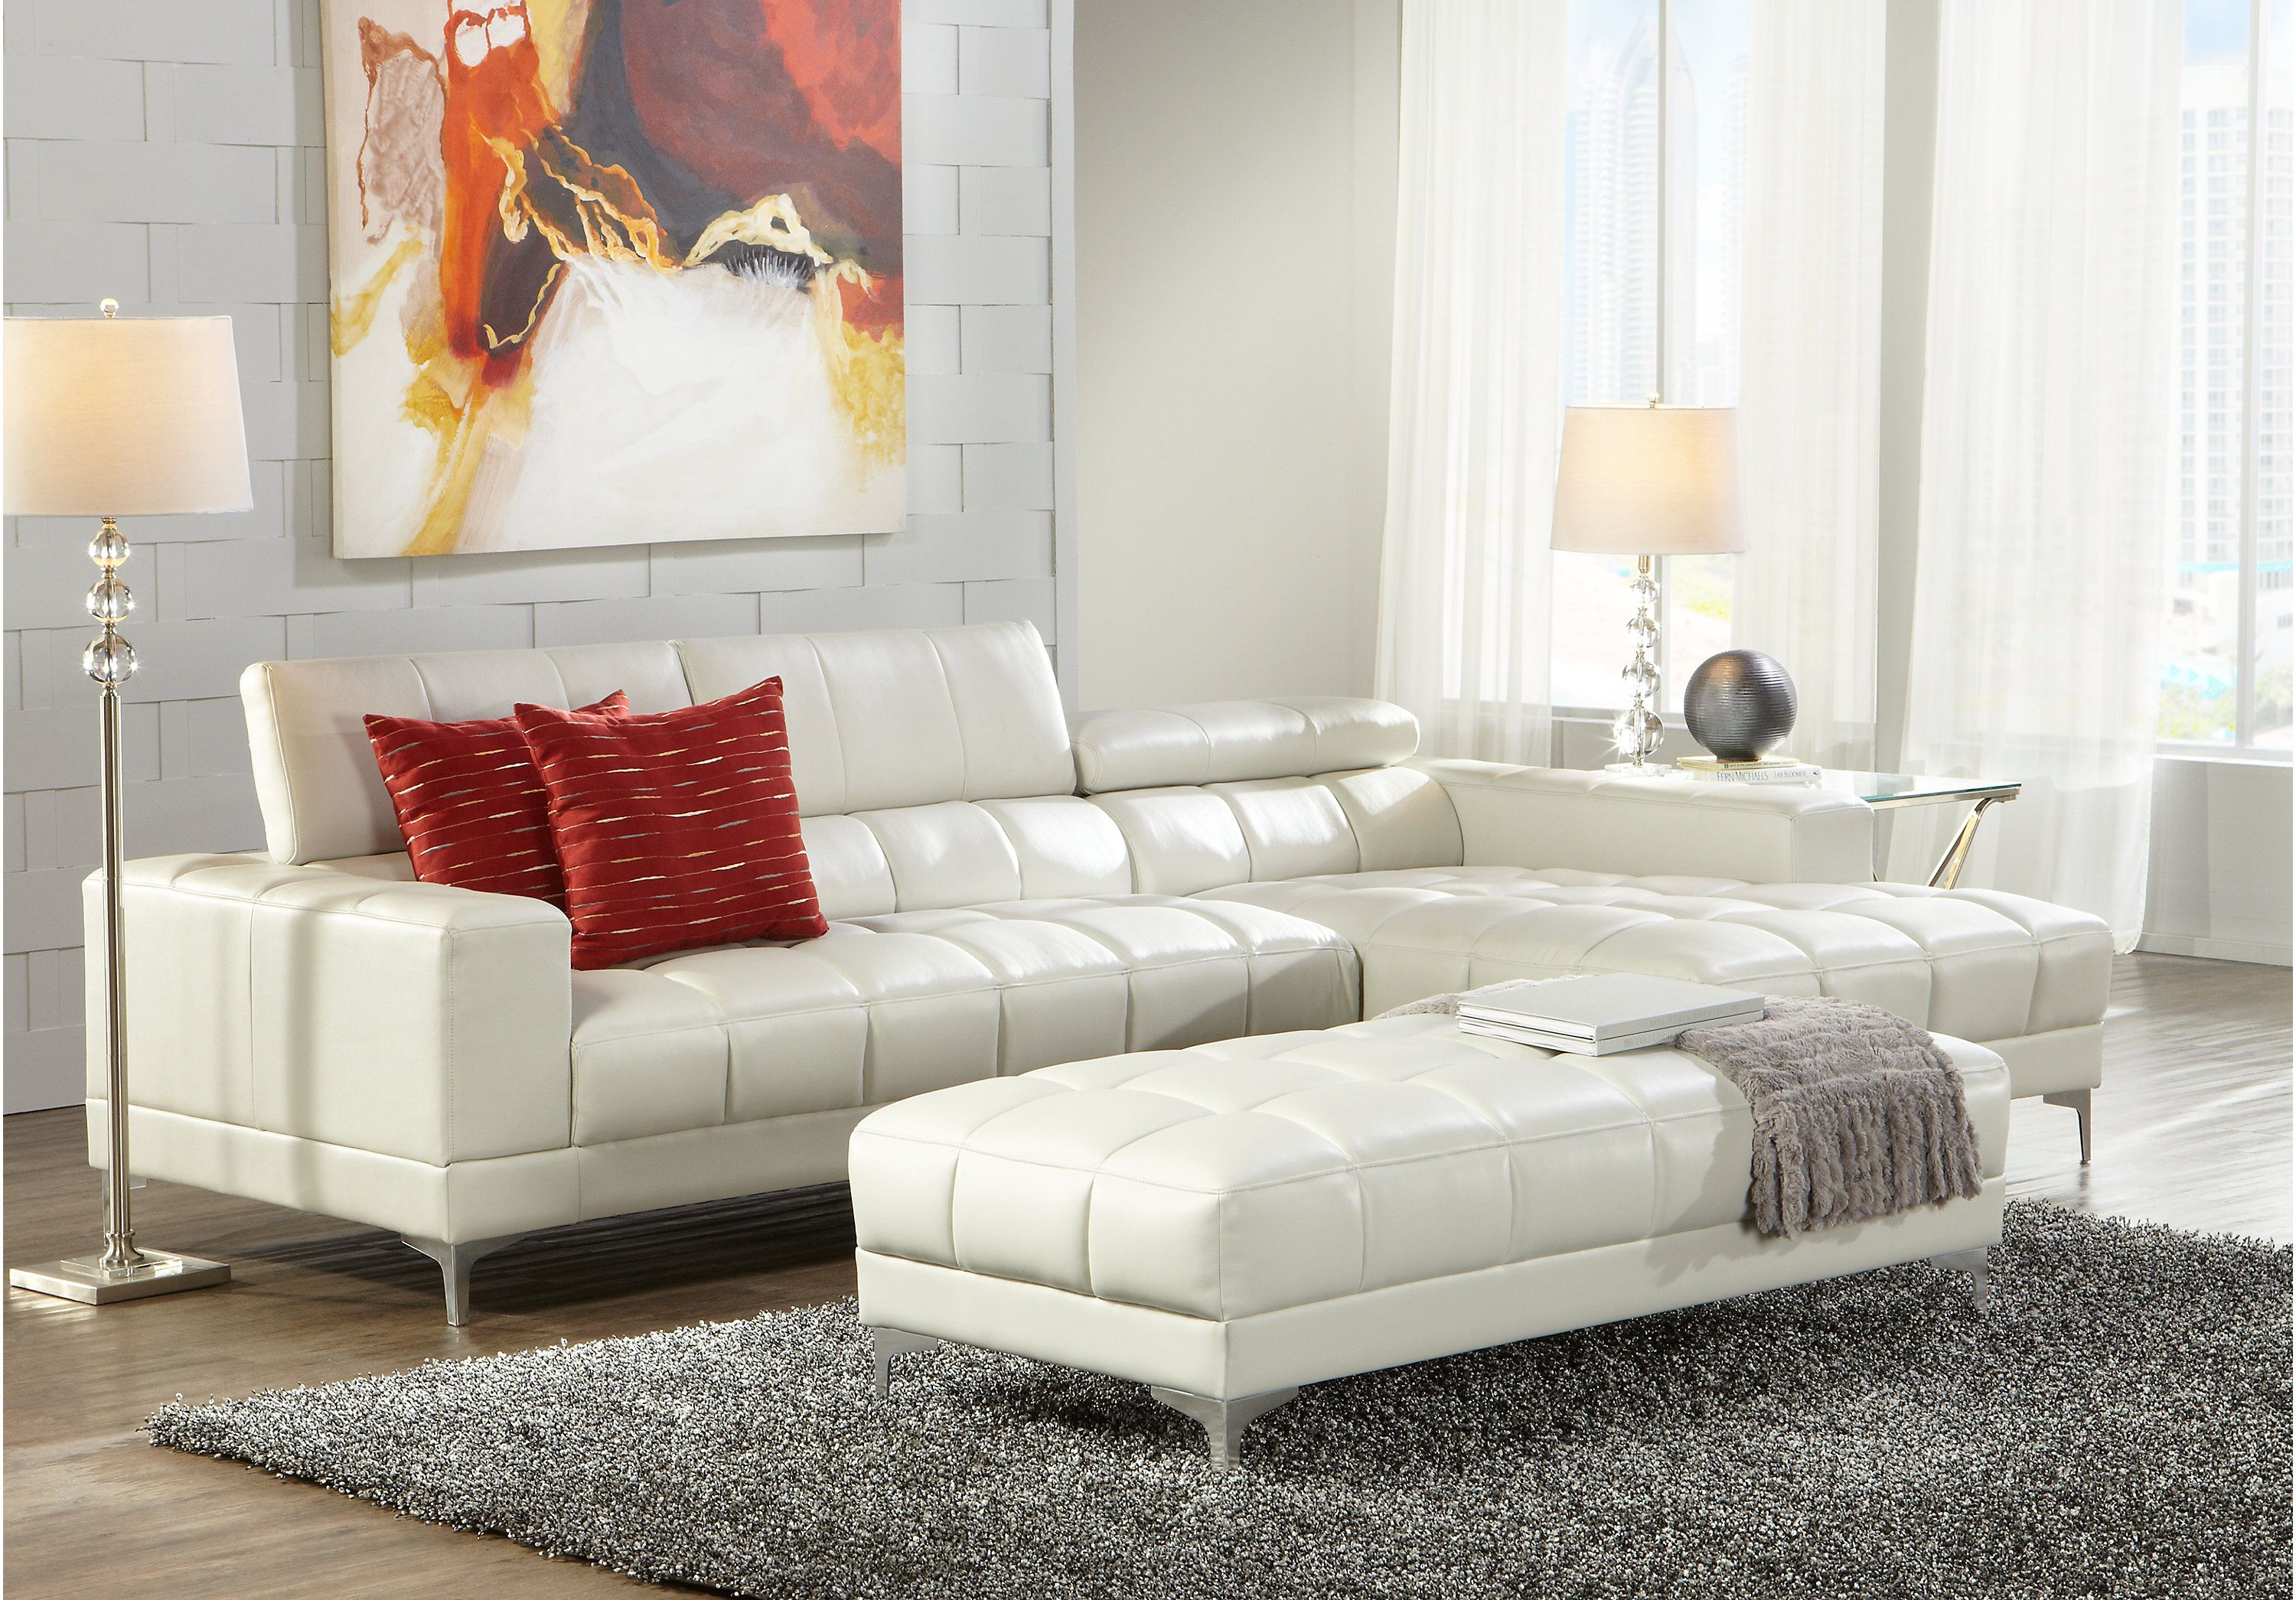 Chesterfield Sofa Wiesbaden Picture Of Sofia Vergara Sybella Off White 2 Pc Sectional From